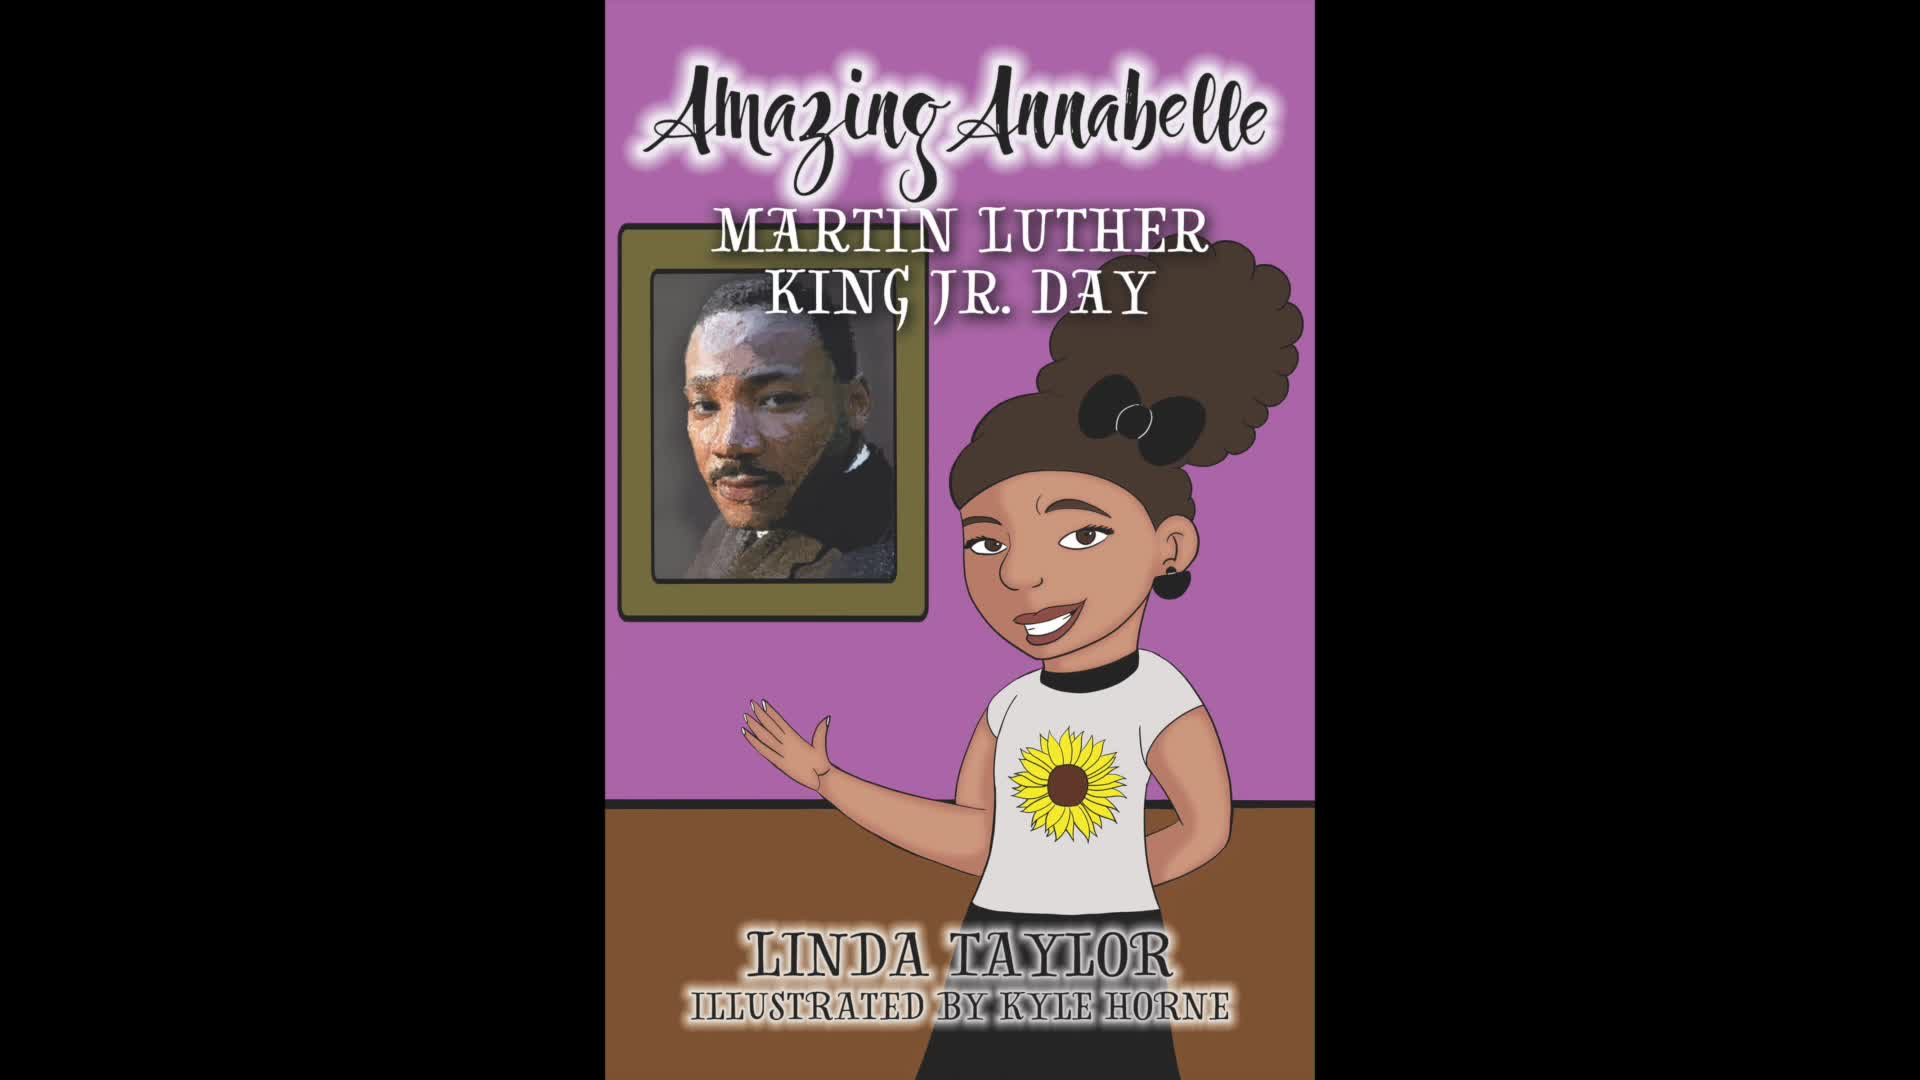 Amazing Annabelle Martin Luther King Jr Day Chapter 8